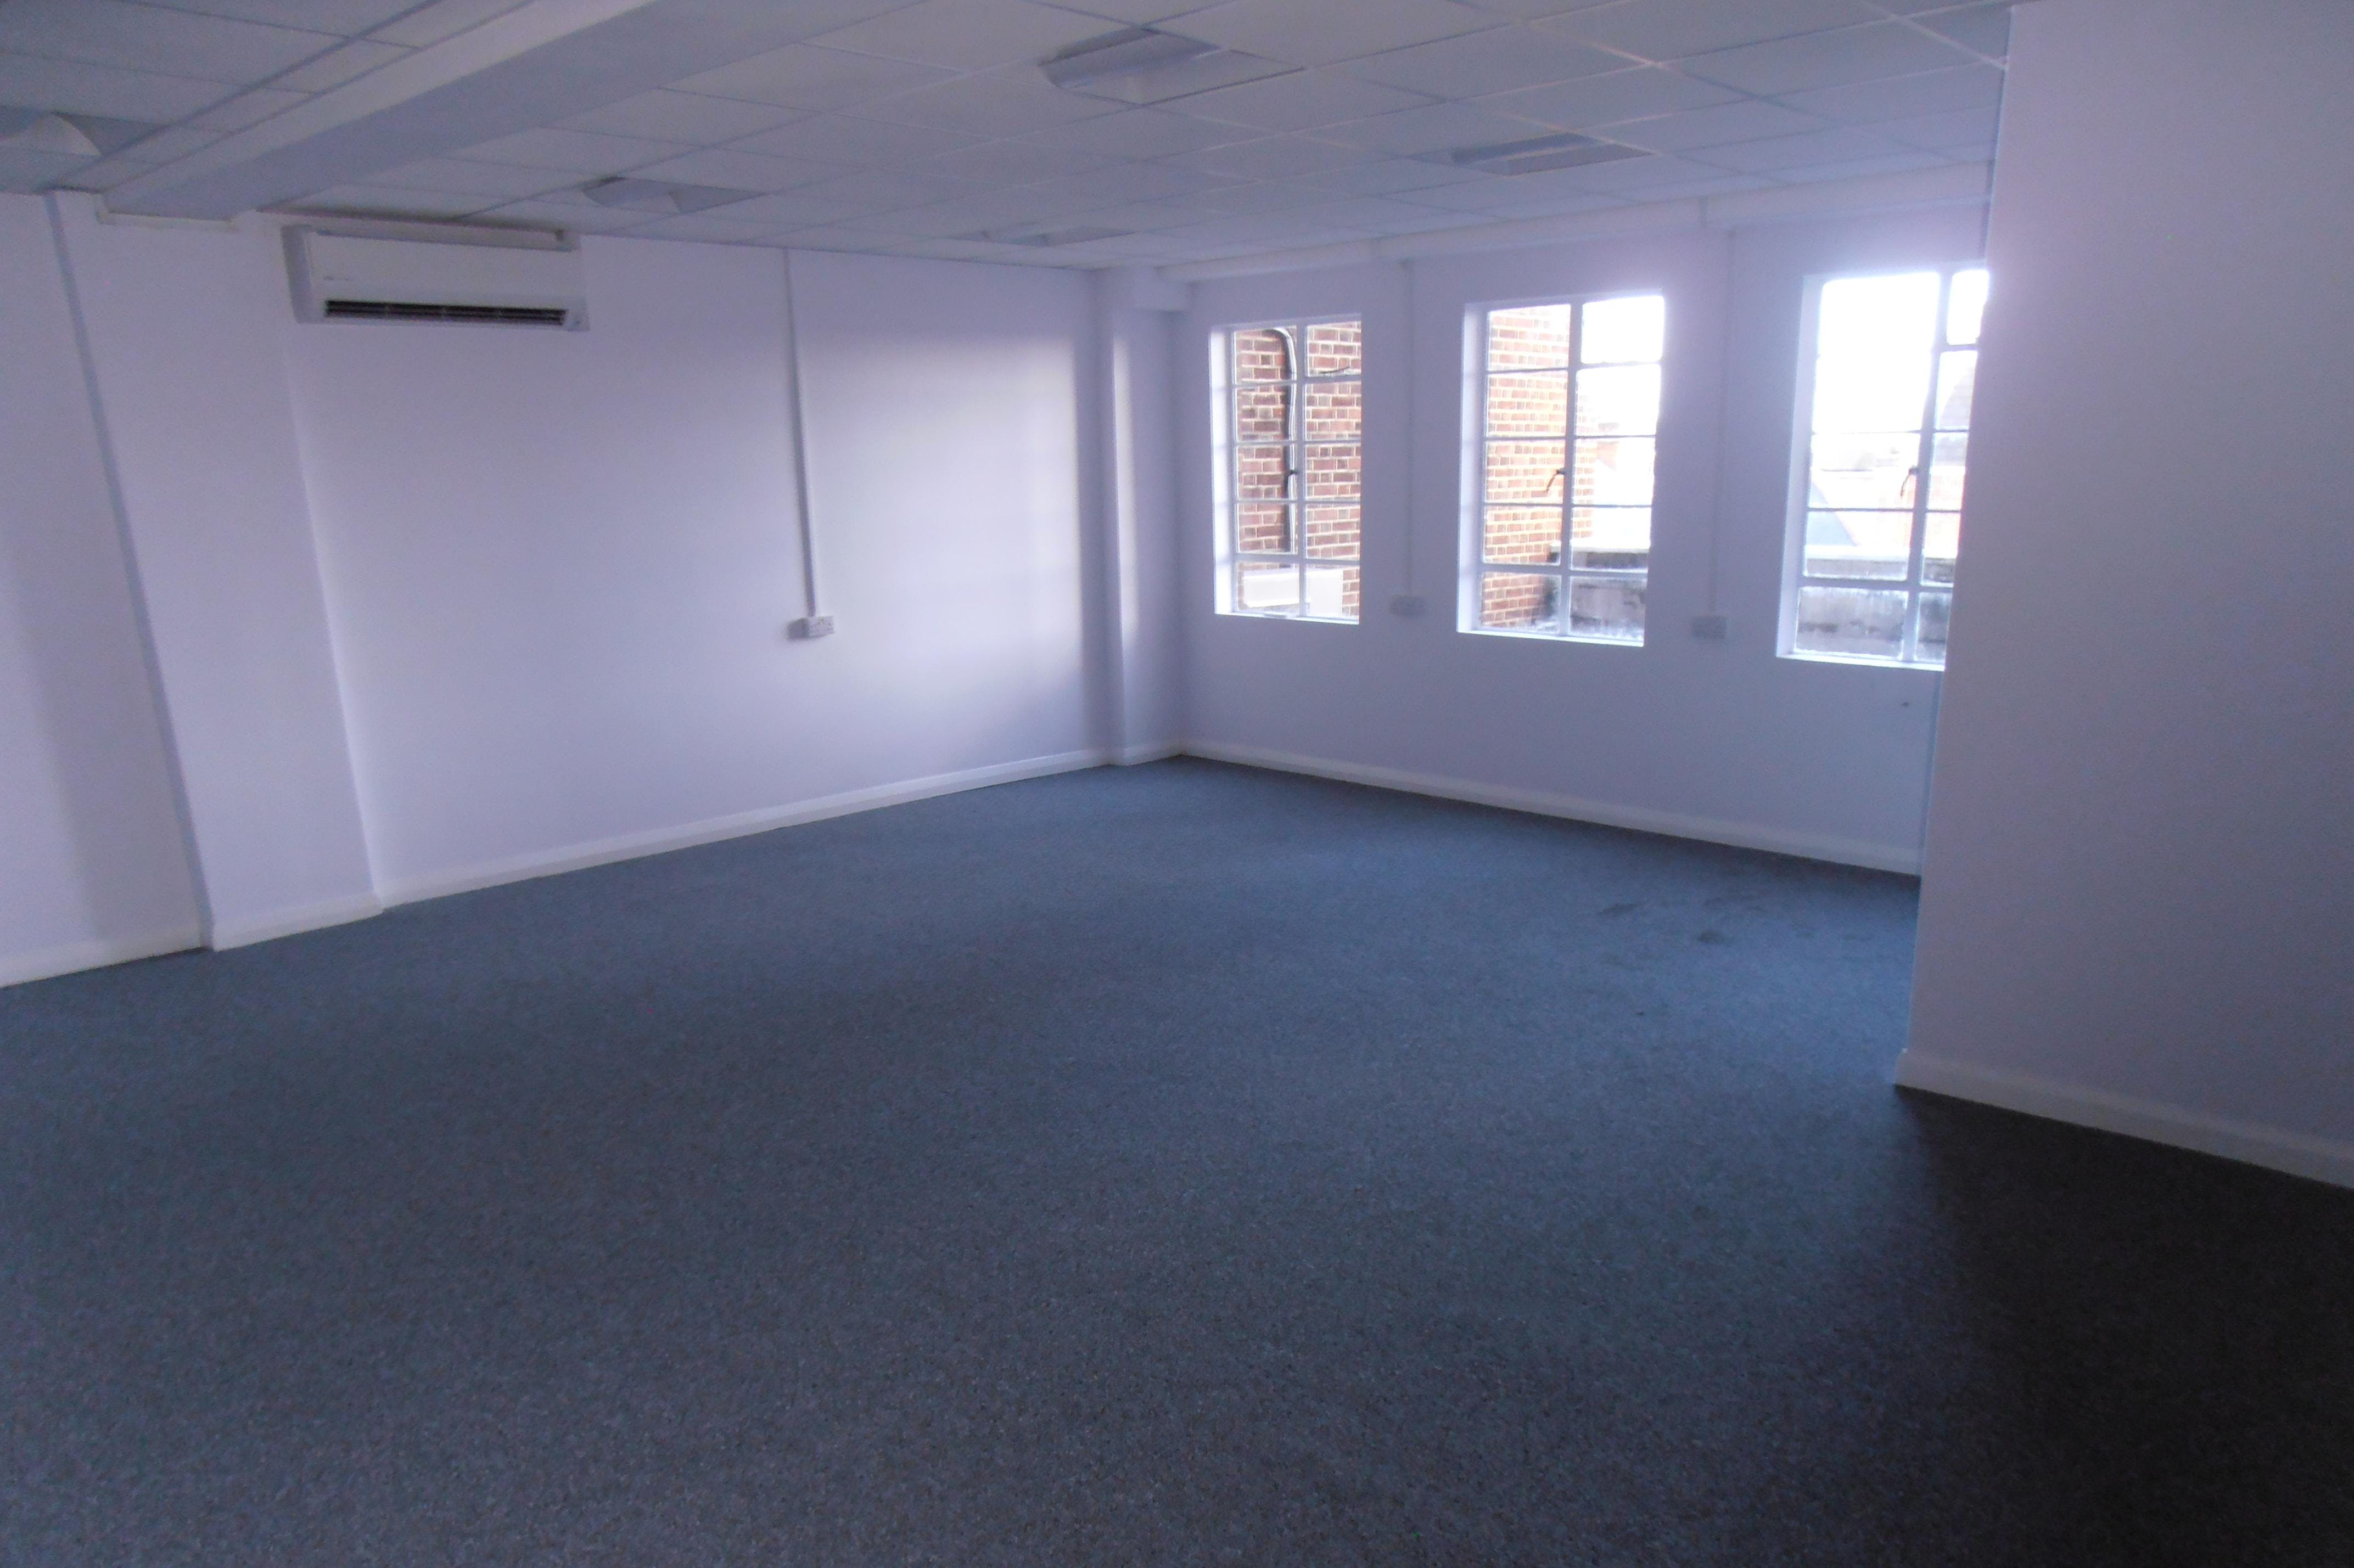 Essex House, 15 Station Road, Upminster, Offices To Let - Essex_House_Upminster_Offices_To_Let_Rent_1.JPG